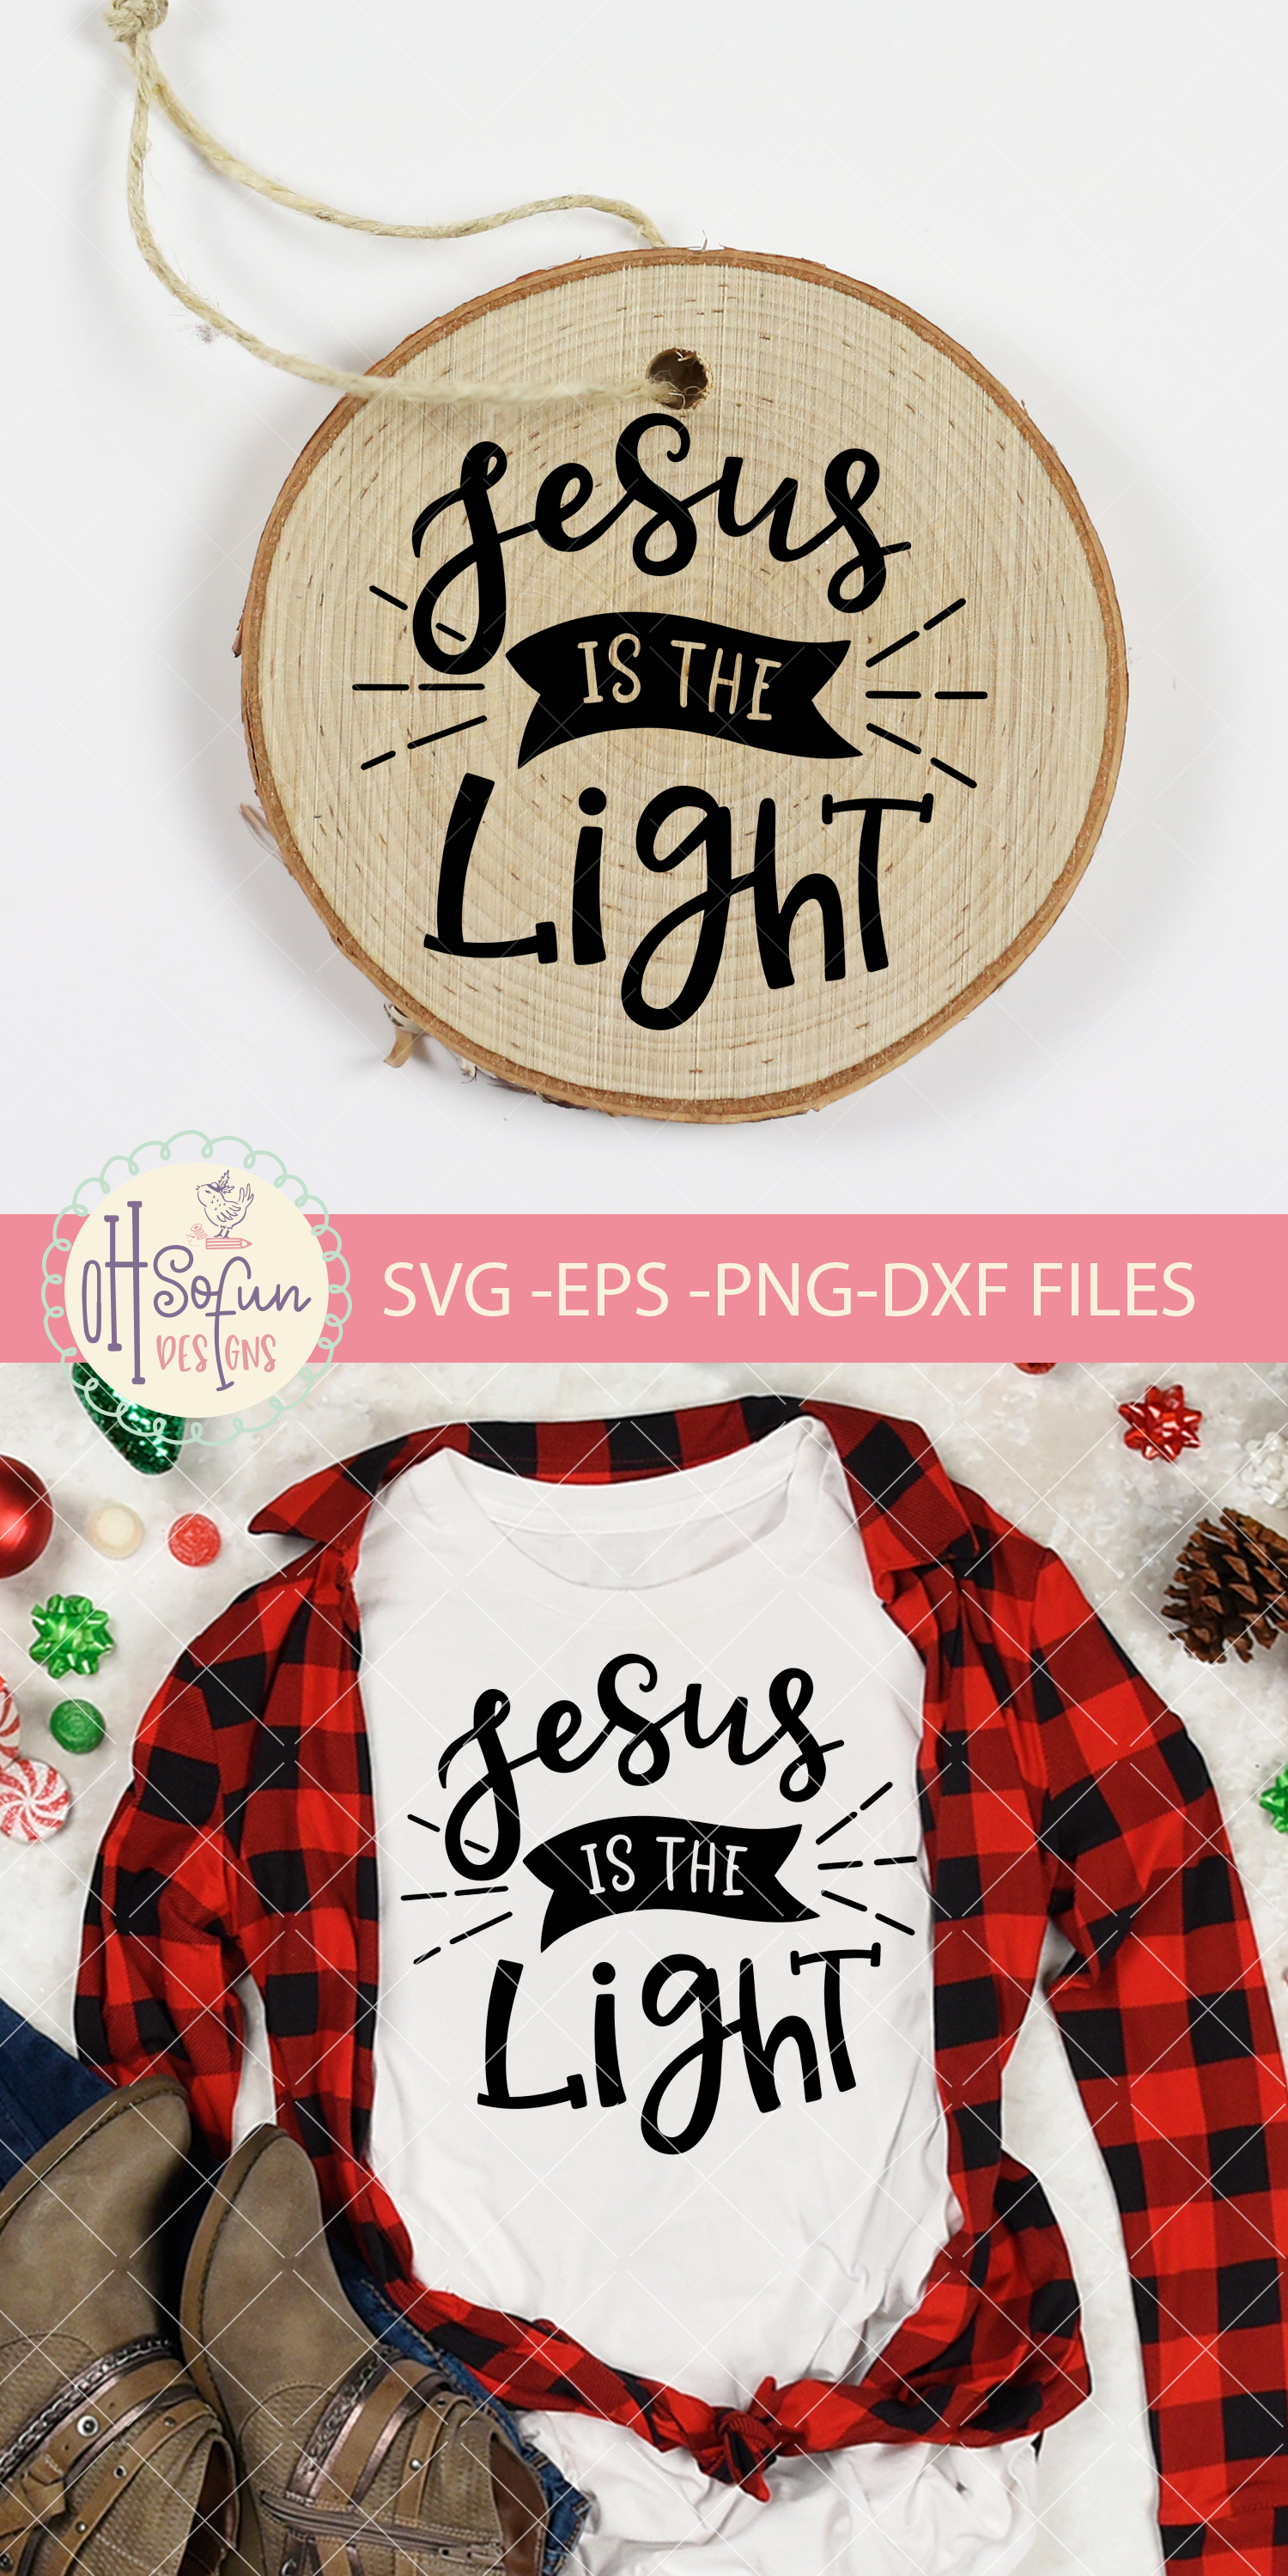 Jesus is the light, hand lettering Christmas ornament SVG example image 2